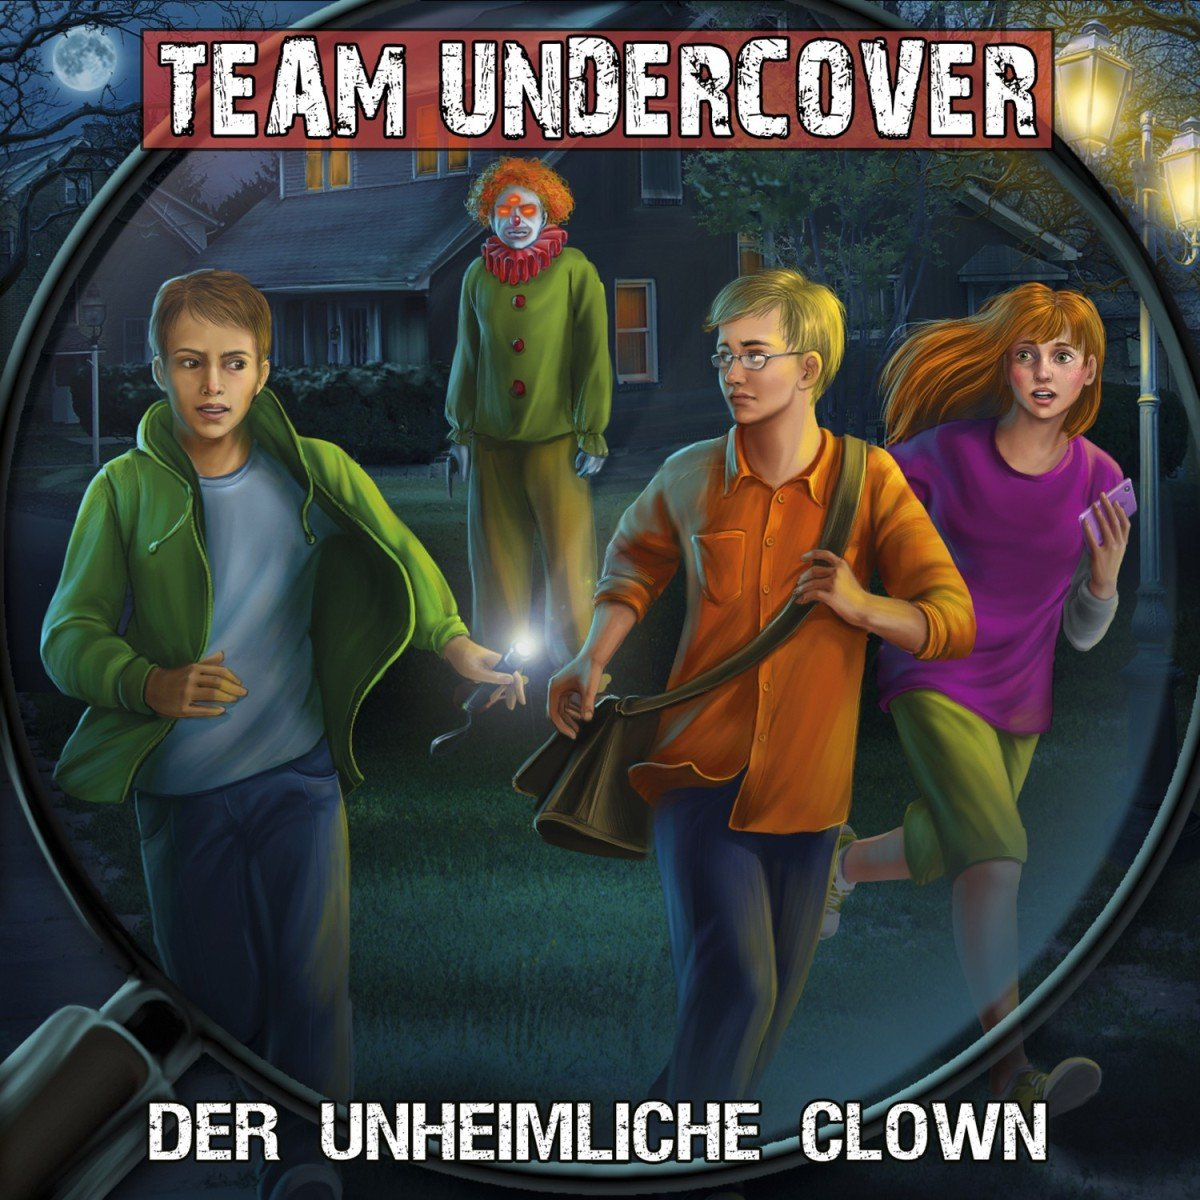 Team Undercover (6) Der unheimliche Clown (Contendo Media)